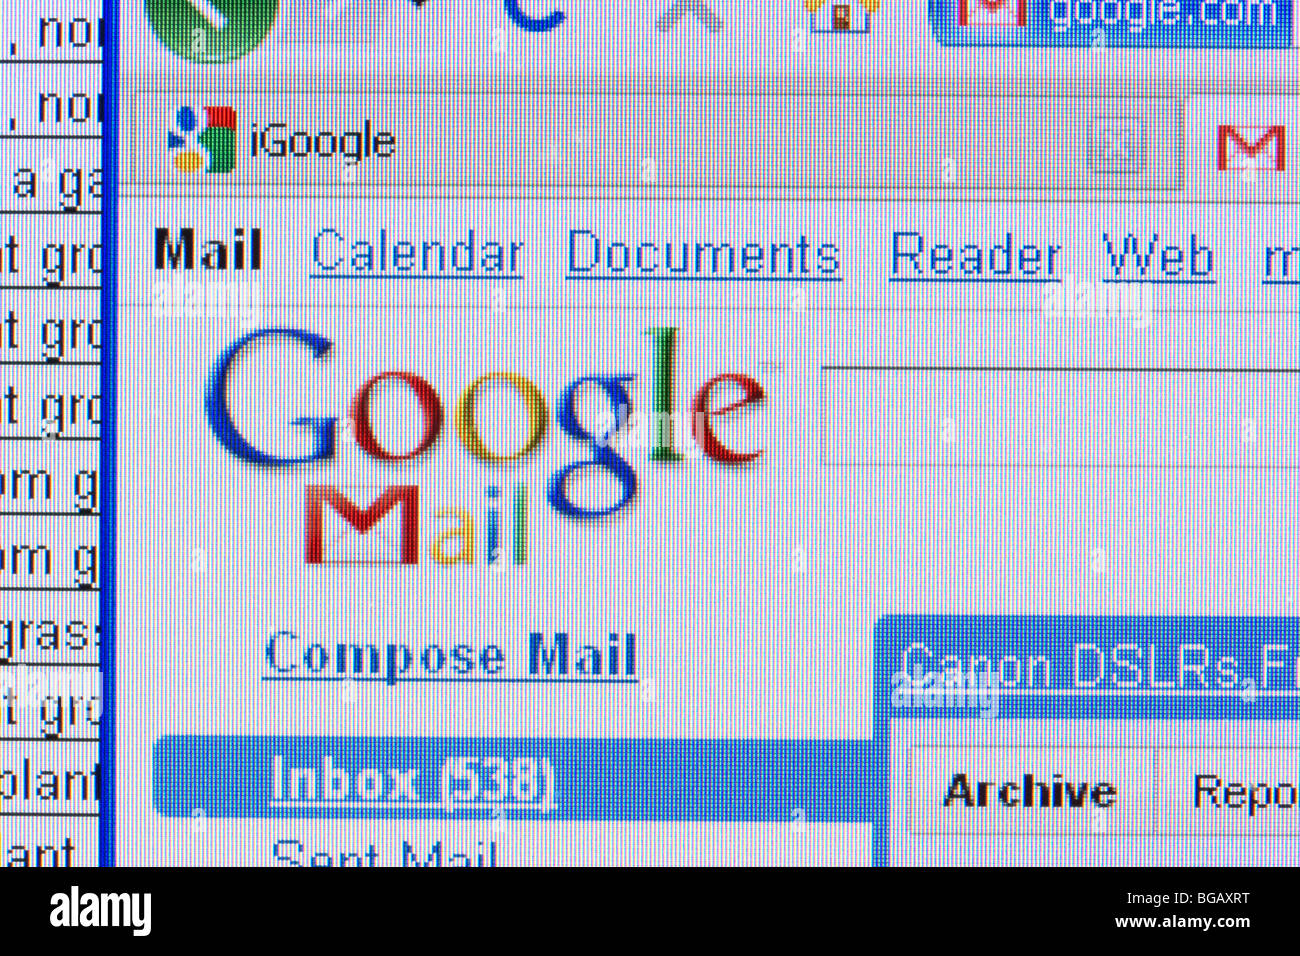 screenshot of googlemail website with spreadsheet in the background for editorial use only - Stock Image